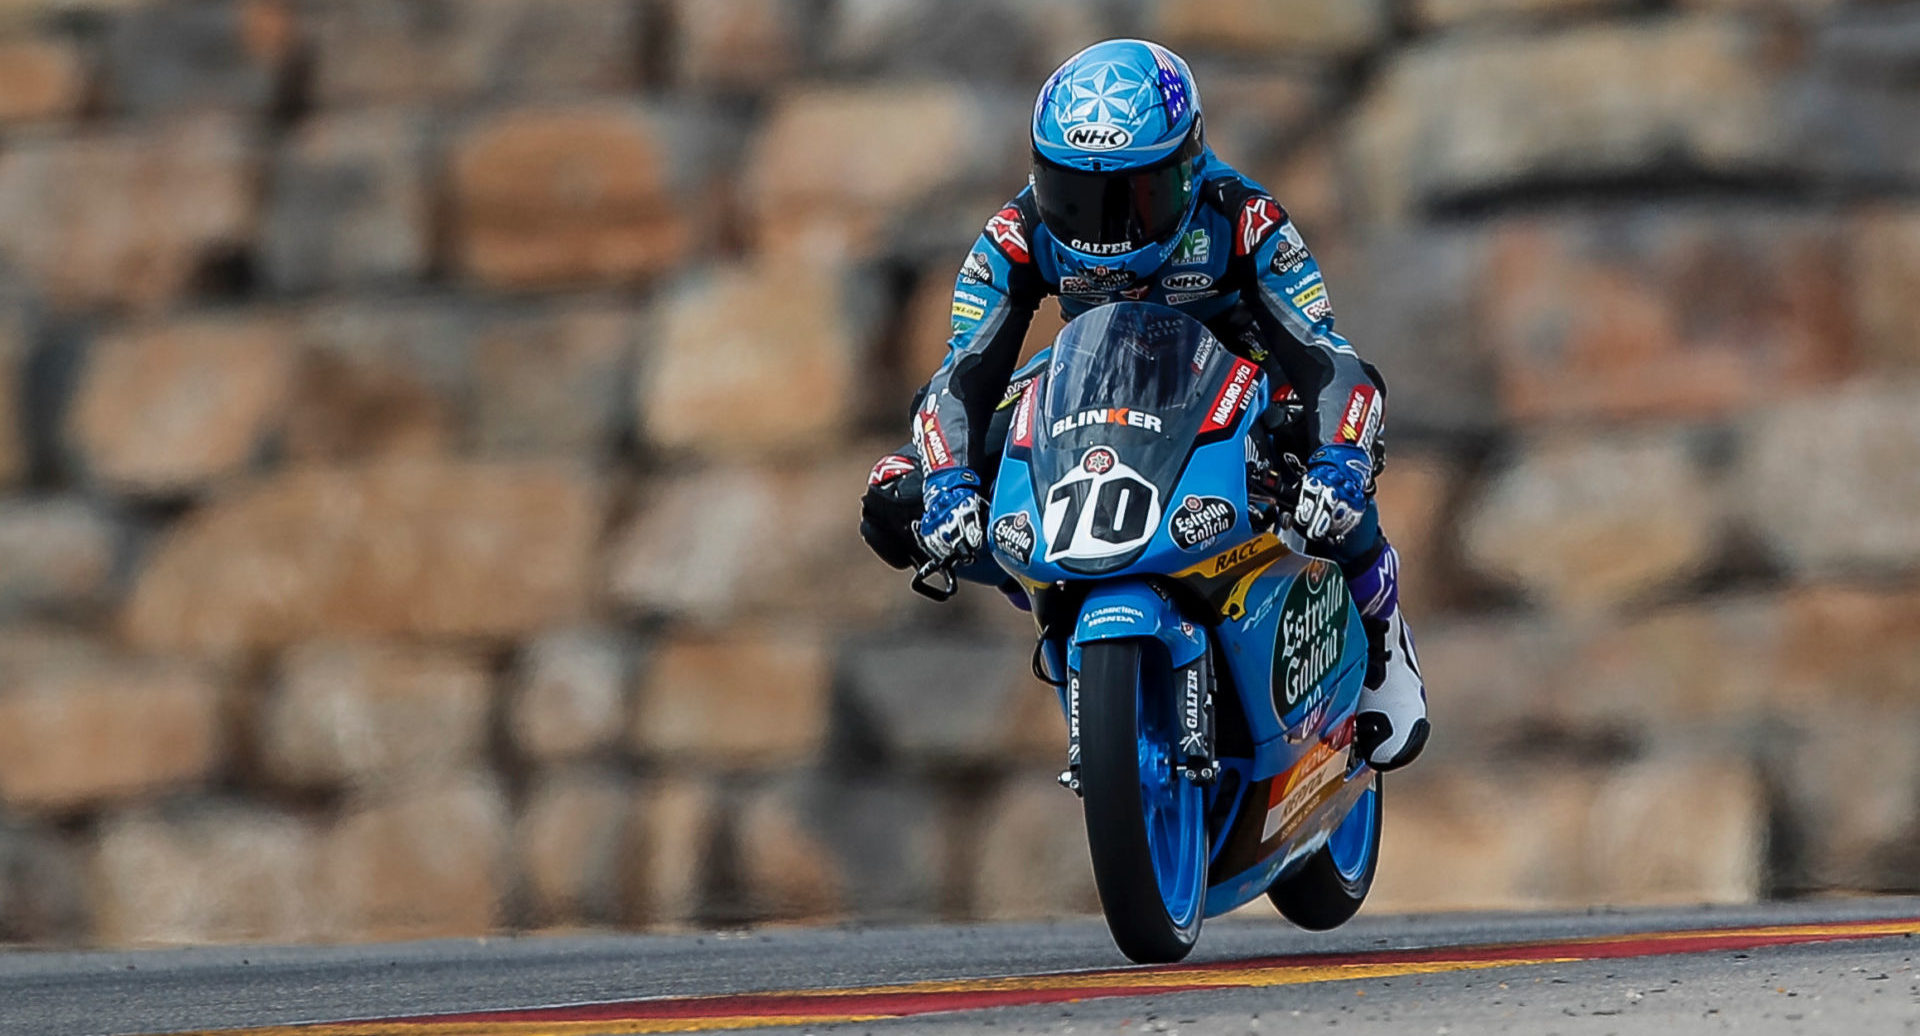 Tyler Scott (70) in action at Motorland Aragon during the 2020 European Talent Cup. Photo courtesy Tyler Scott.